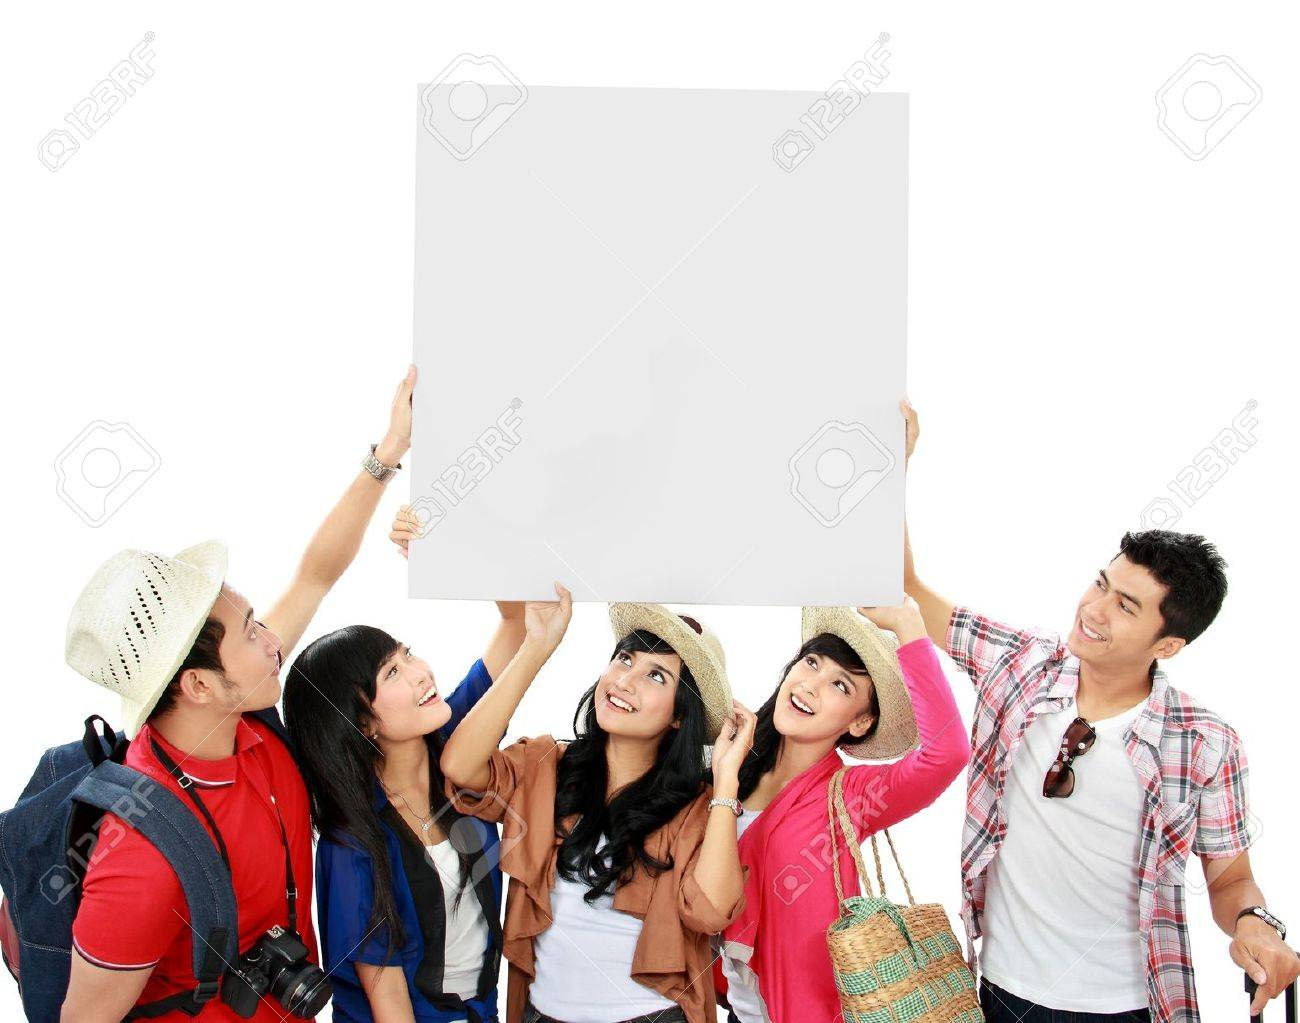 group of young tourist hold a white banner and look up Stock Photo - 16827323